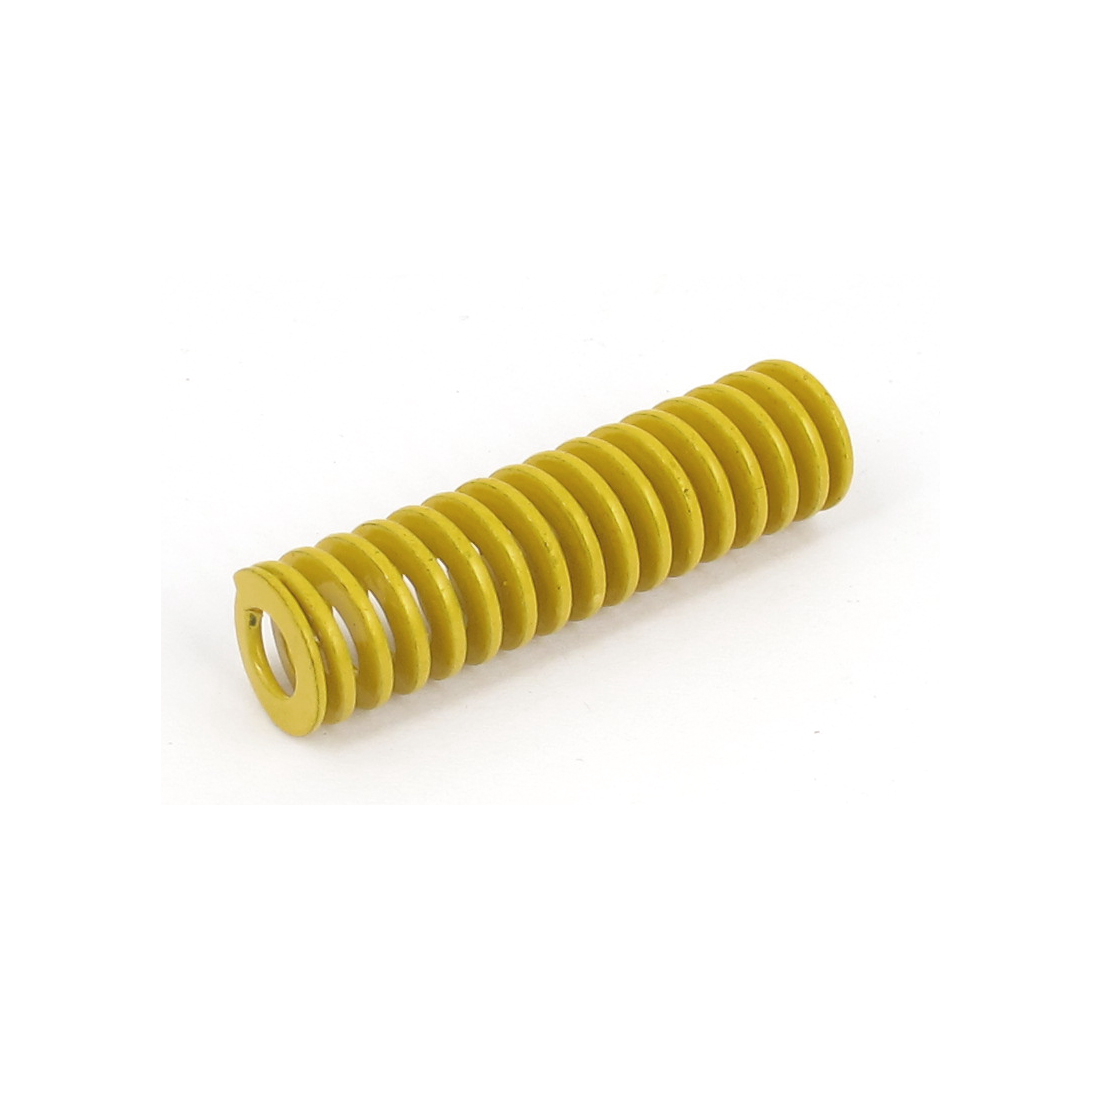 12mm OD 45mm Long Lightest Load Spiral Stamping Compression Die Spring Yellow